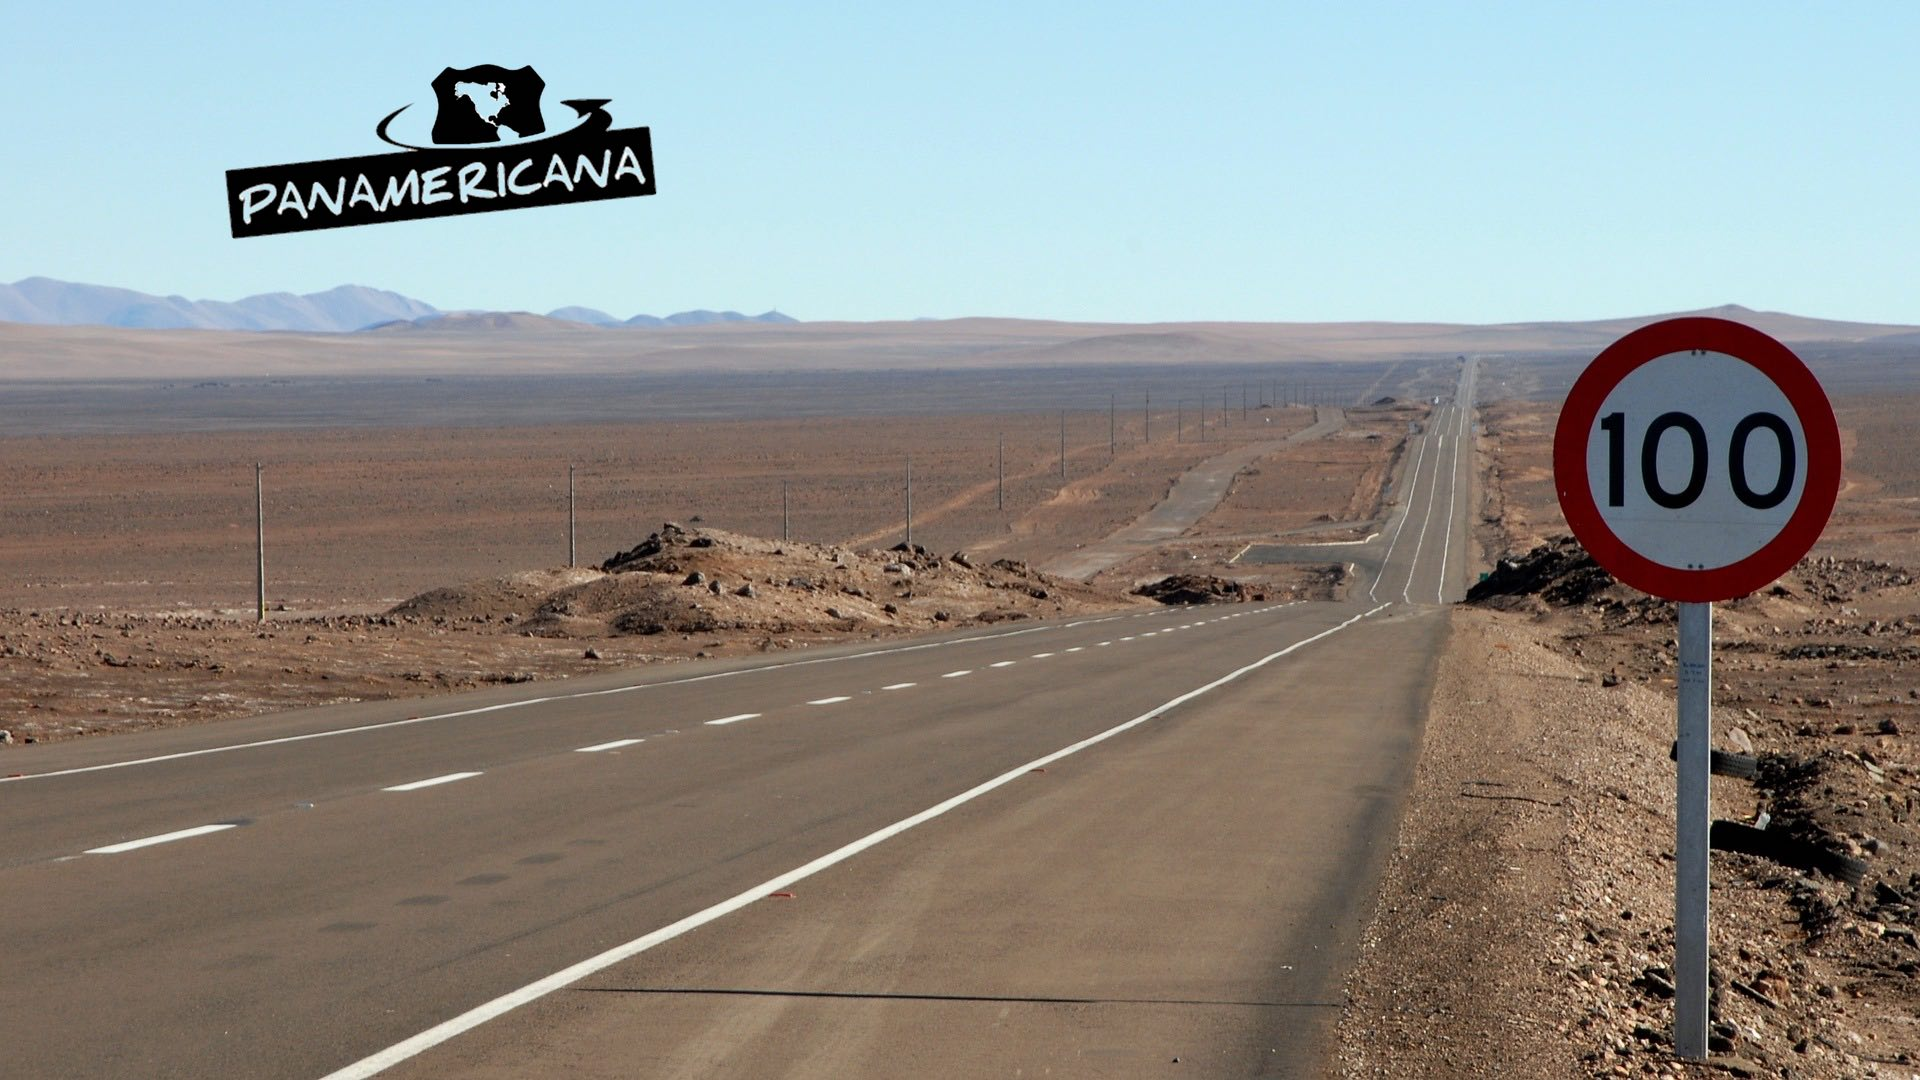 Panamericana - Two on a trip